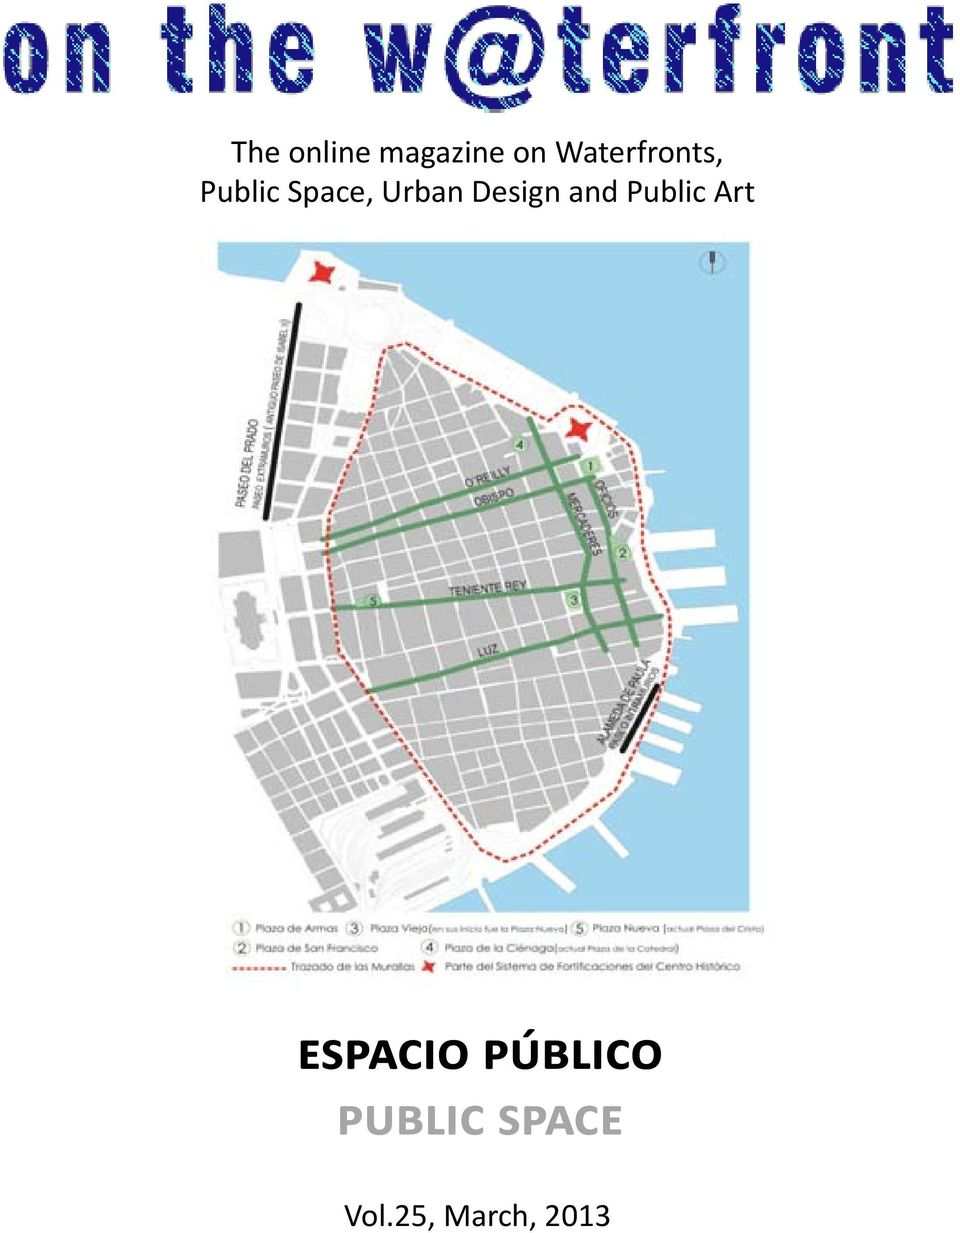 Urban Design and Public Art